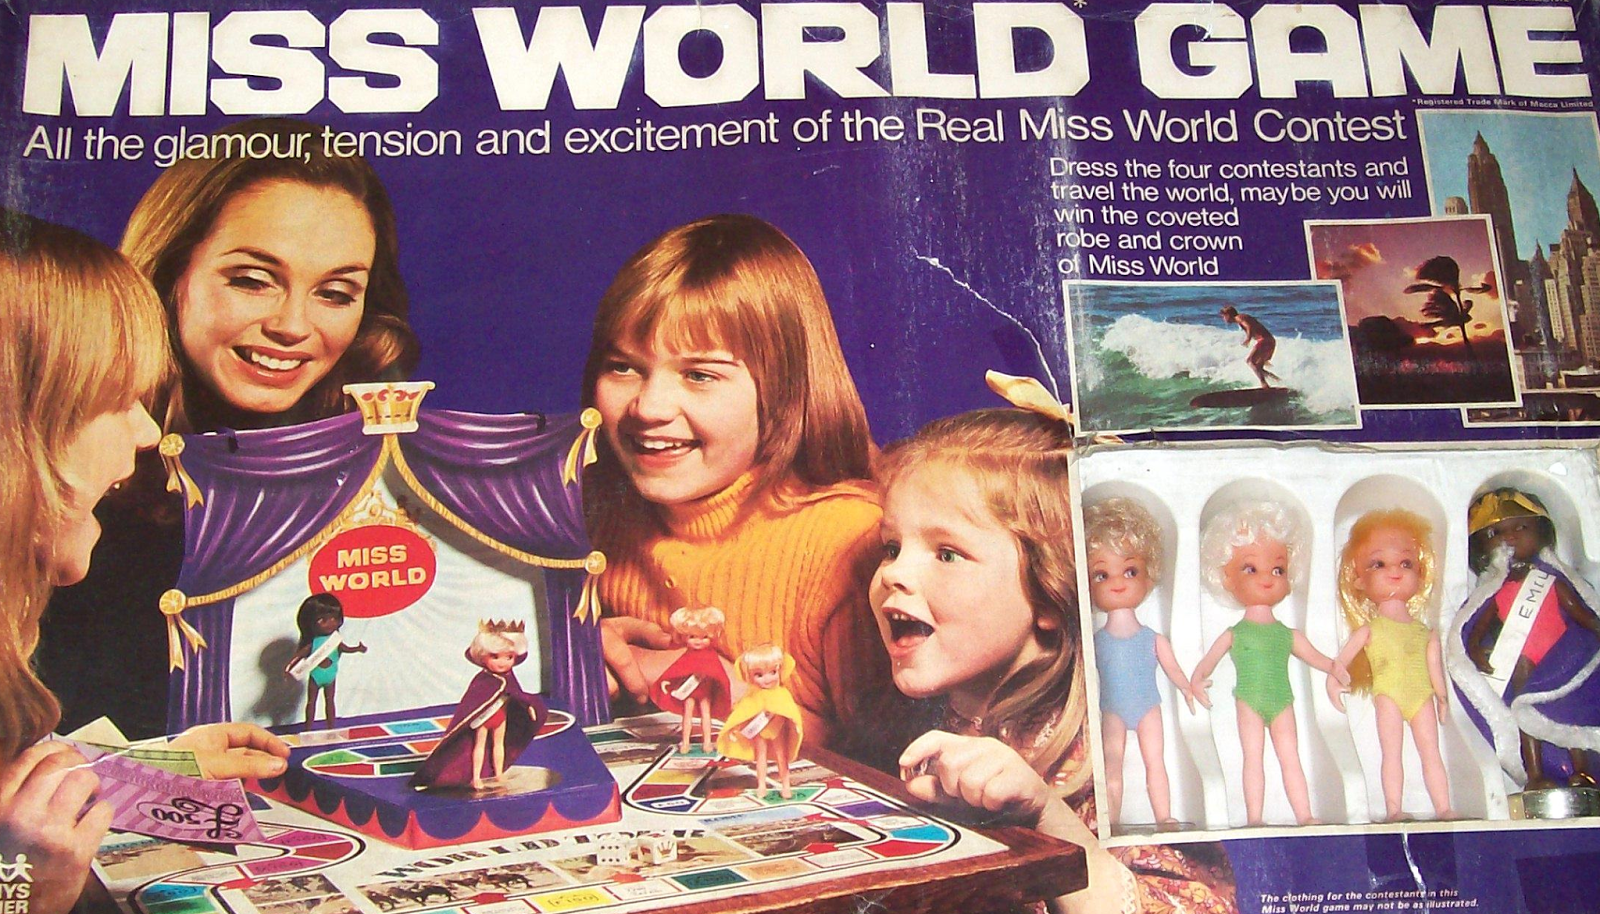 Miss World Game board game by Denys Fisher.